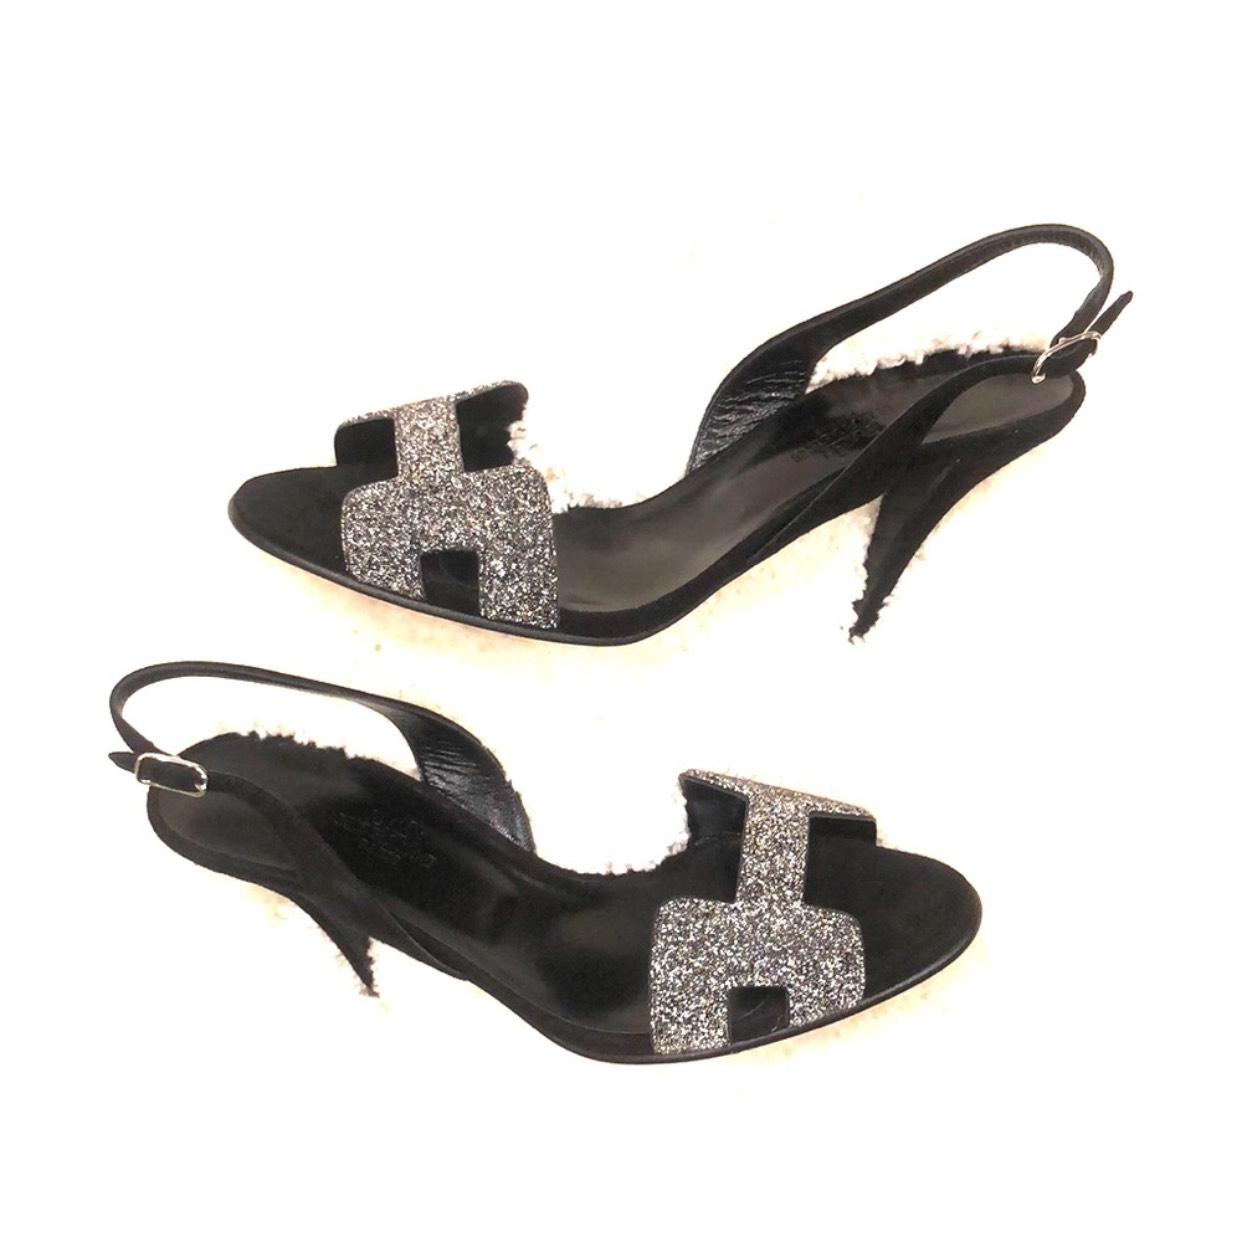 Hermès Black Night 90 Sandals Formal Shoes Size EU 36 (Approx. US 6) Regular (M, B)